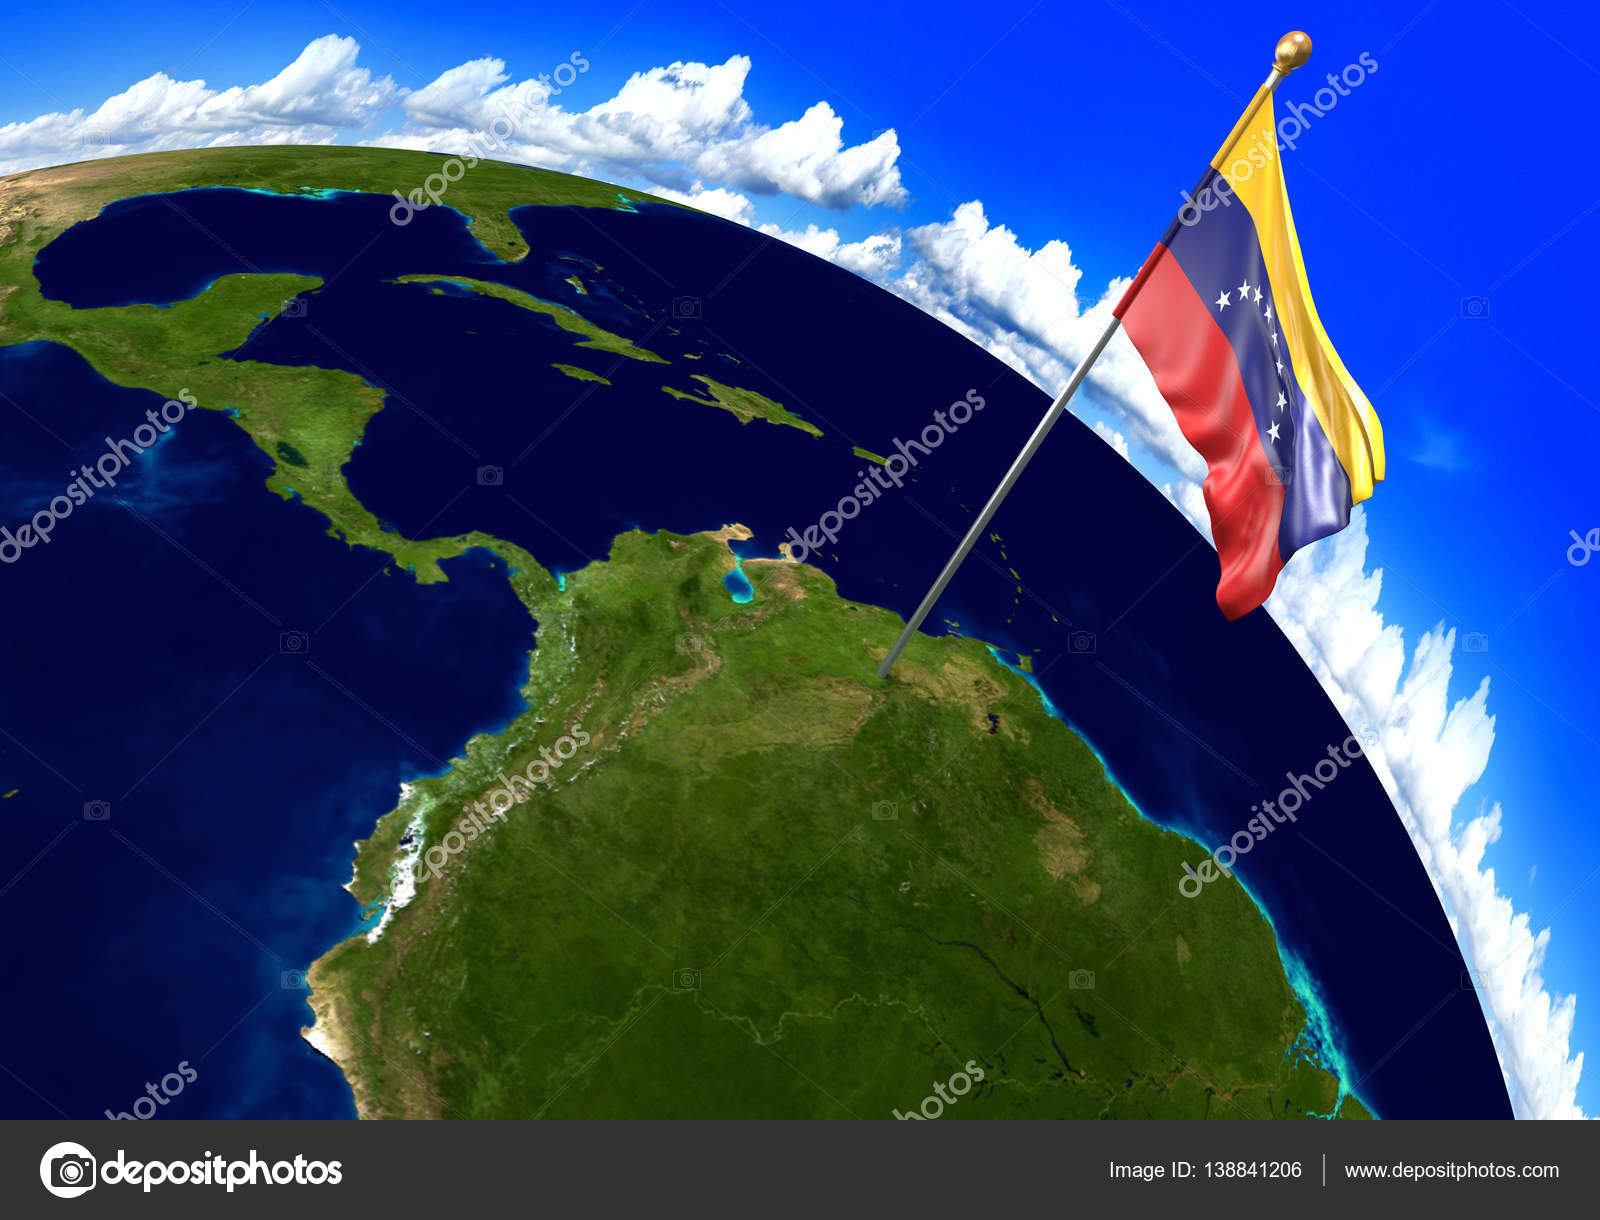 Venezuela national flag marking the country location on world map 3d render of the national flag of venezuela over the geographic location of the country on a world map parts of this image furnished by nasa gumiabroncs